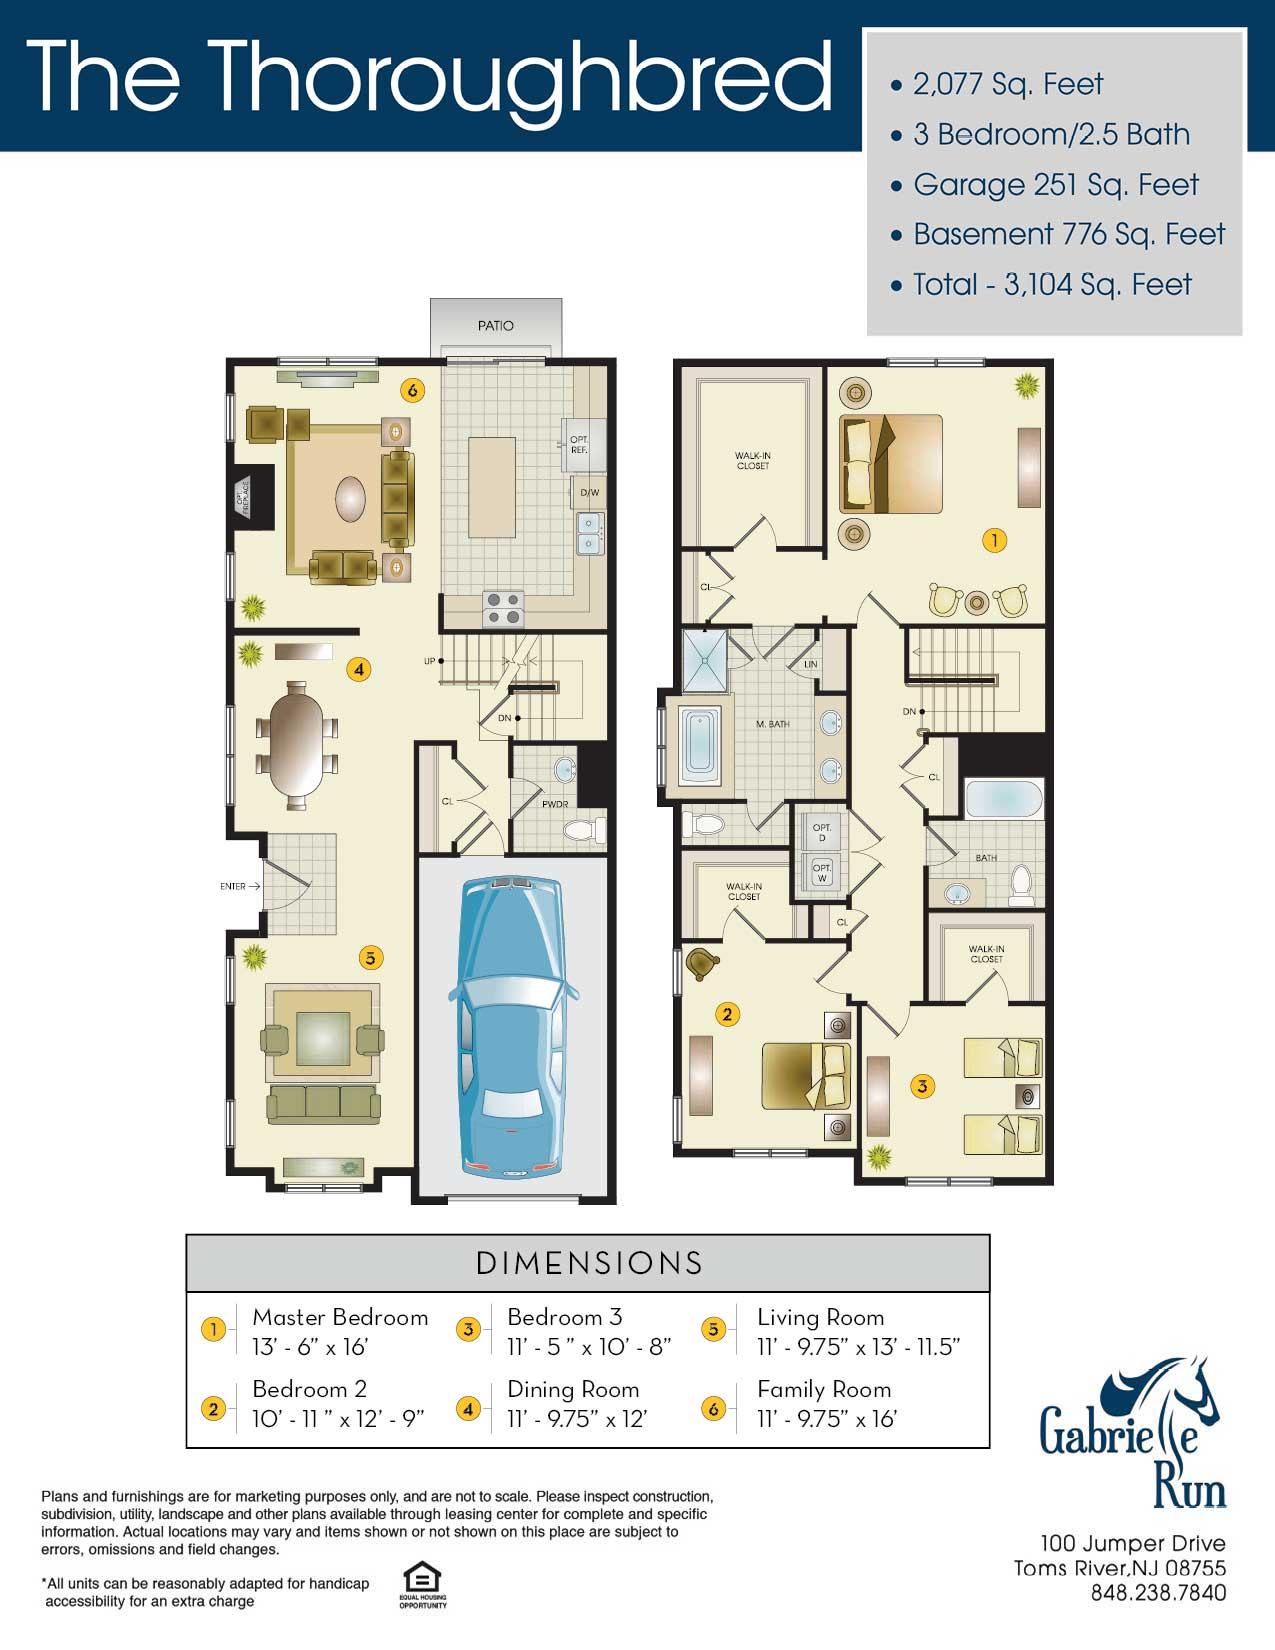 The Thoroughbred Floor Plan